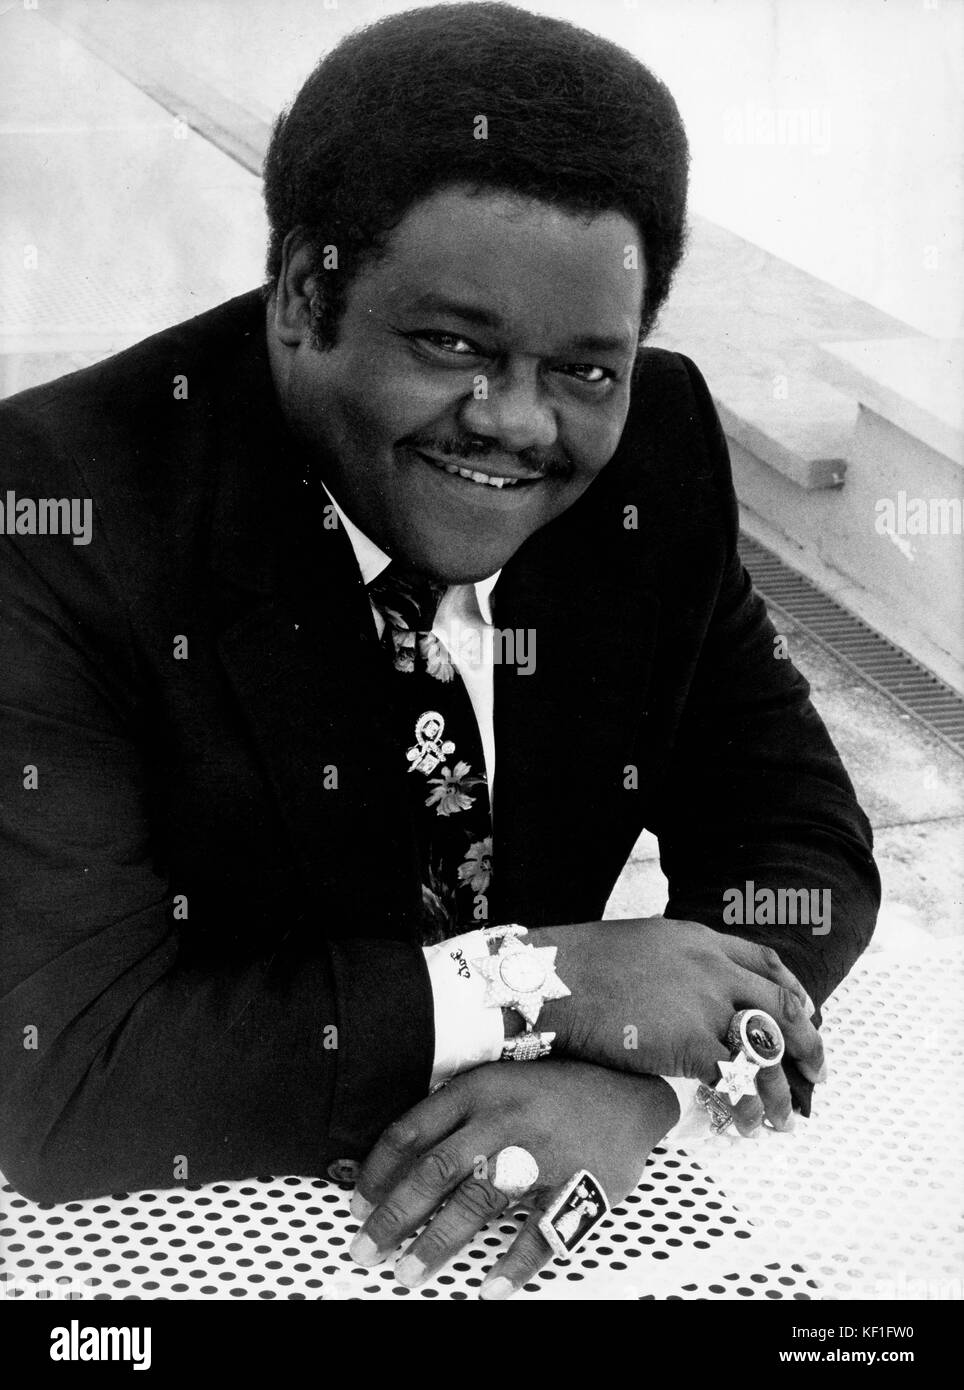 October 25, 2017 - FATS DOMINO, one of the most influential rock and roll performers of the 1950s and 60s, dies - Stock Image